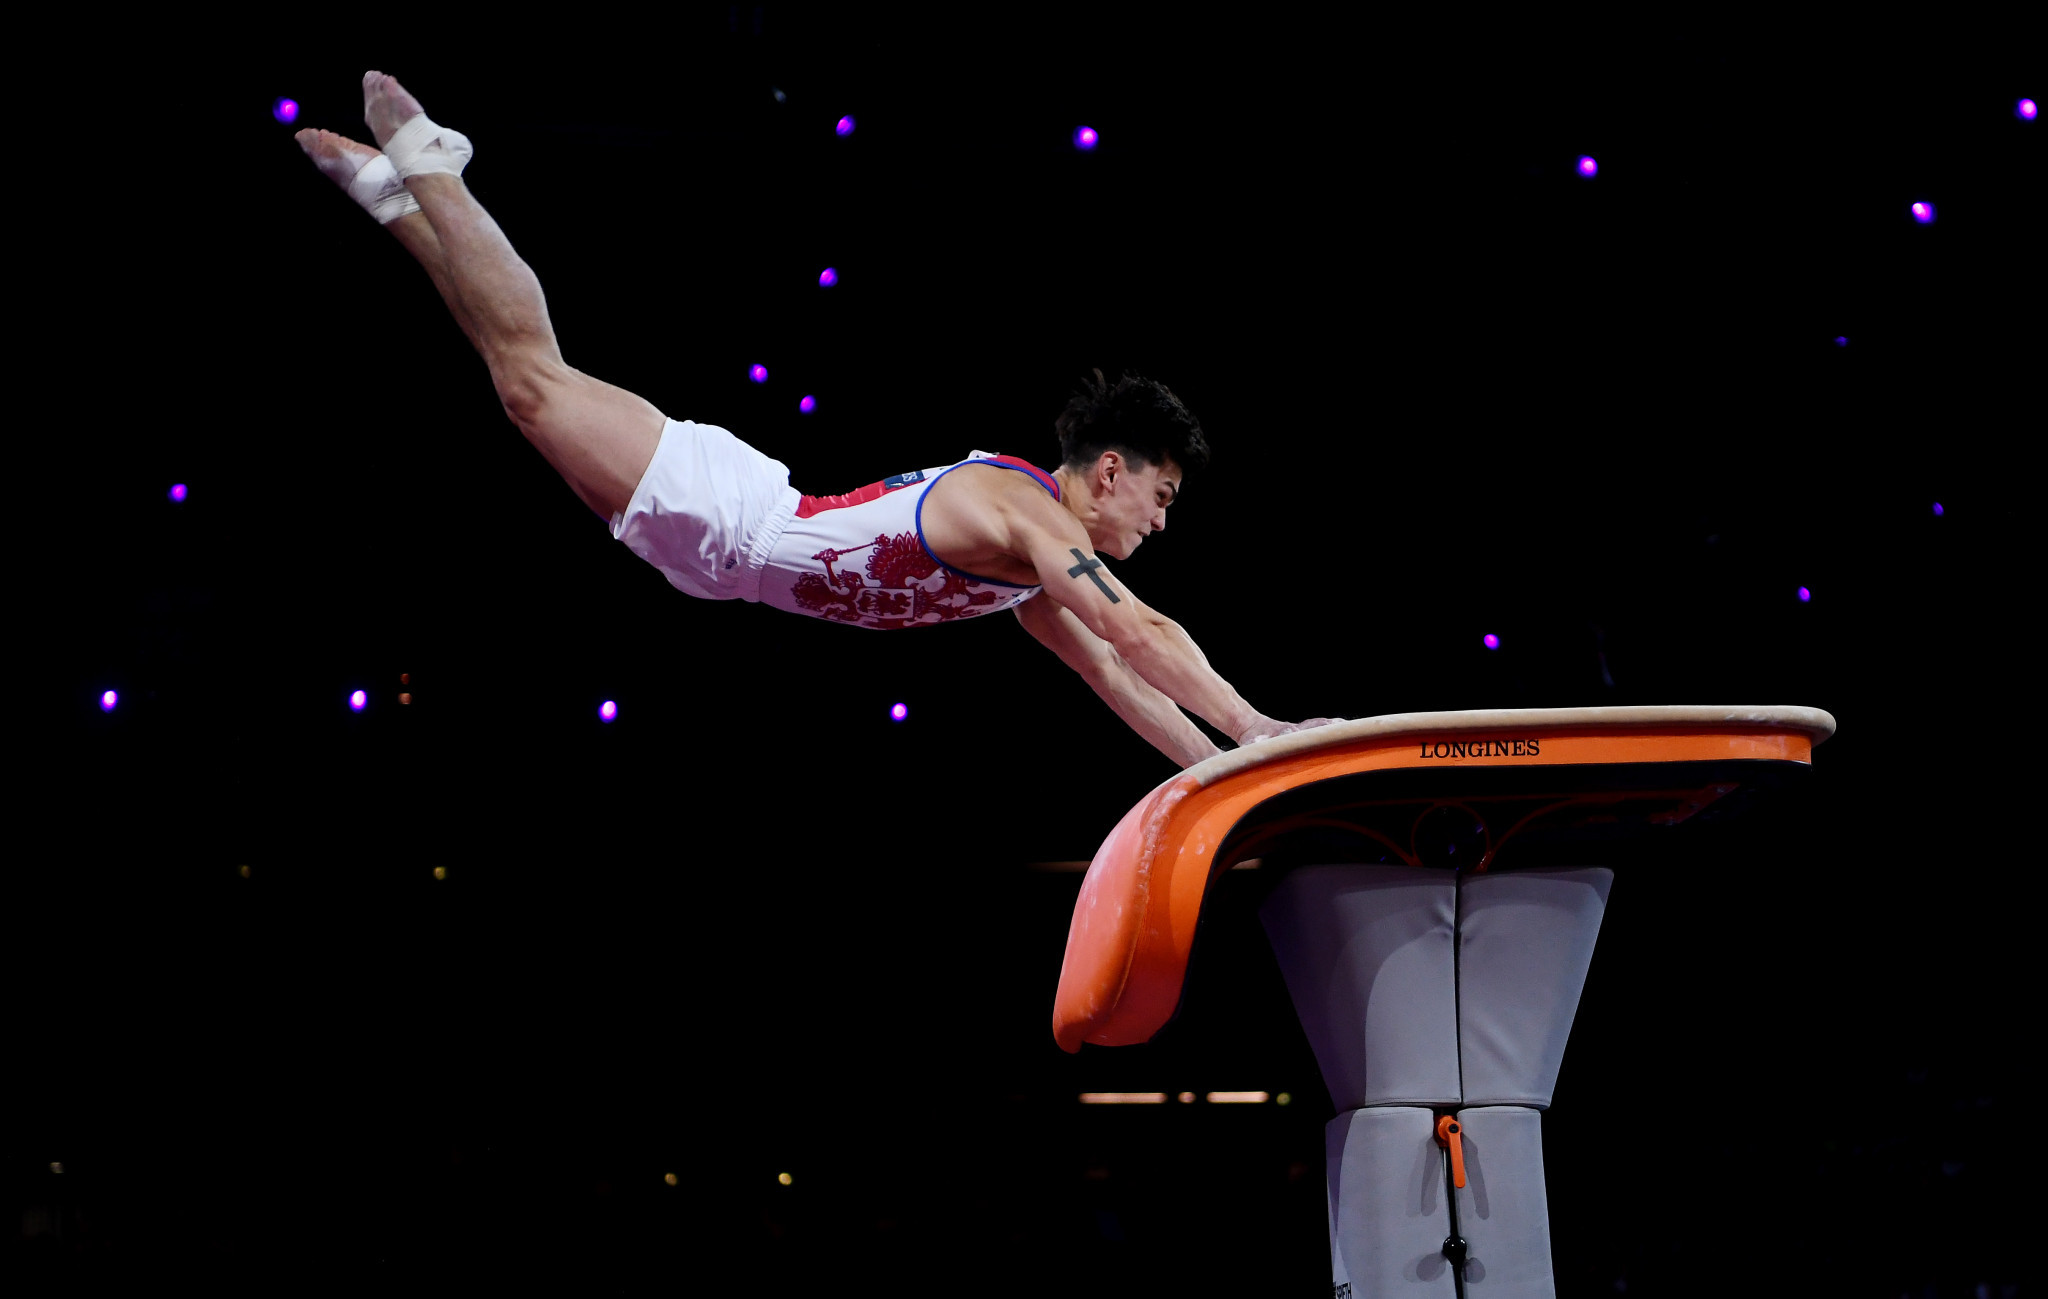 Russia has also pulled out of the European Artistic and Rhythmic Gymnastics Championships ©Getty Images